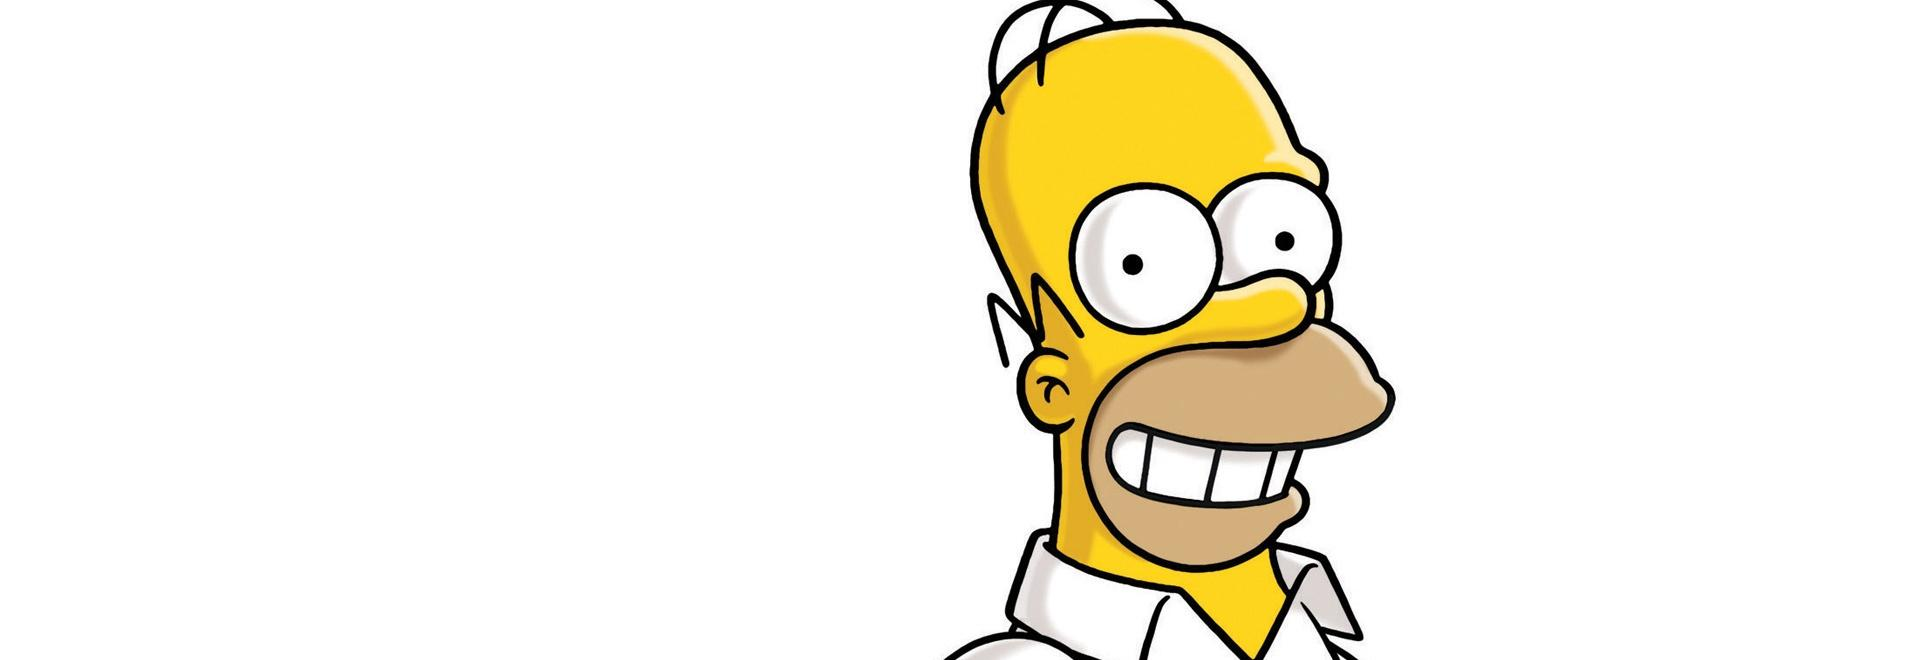 Il triplice bypass di Homer